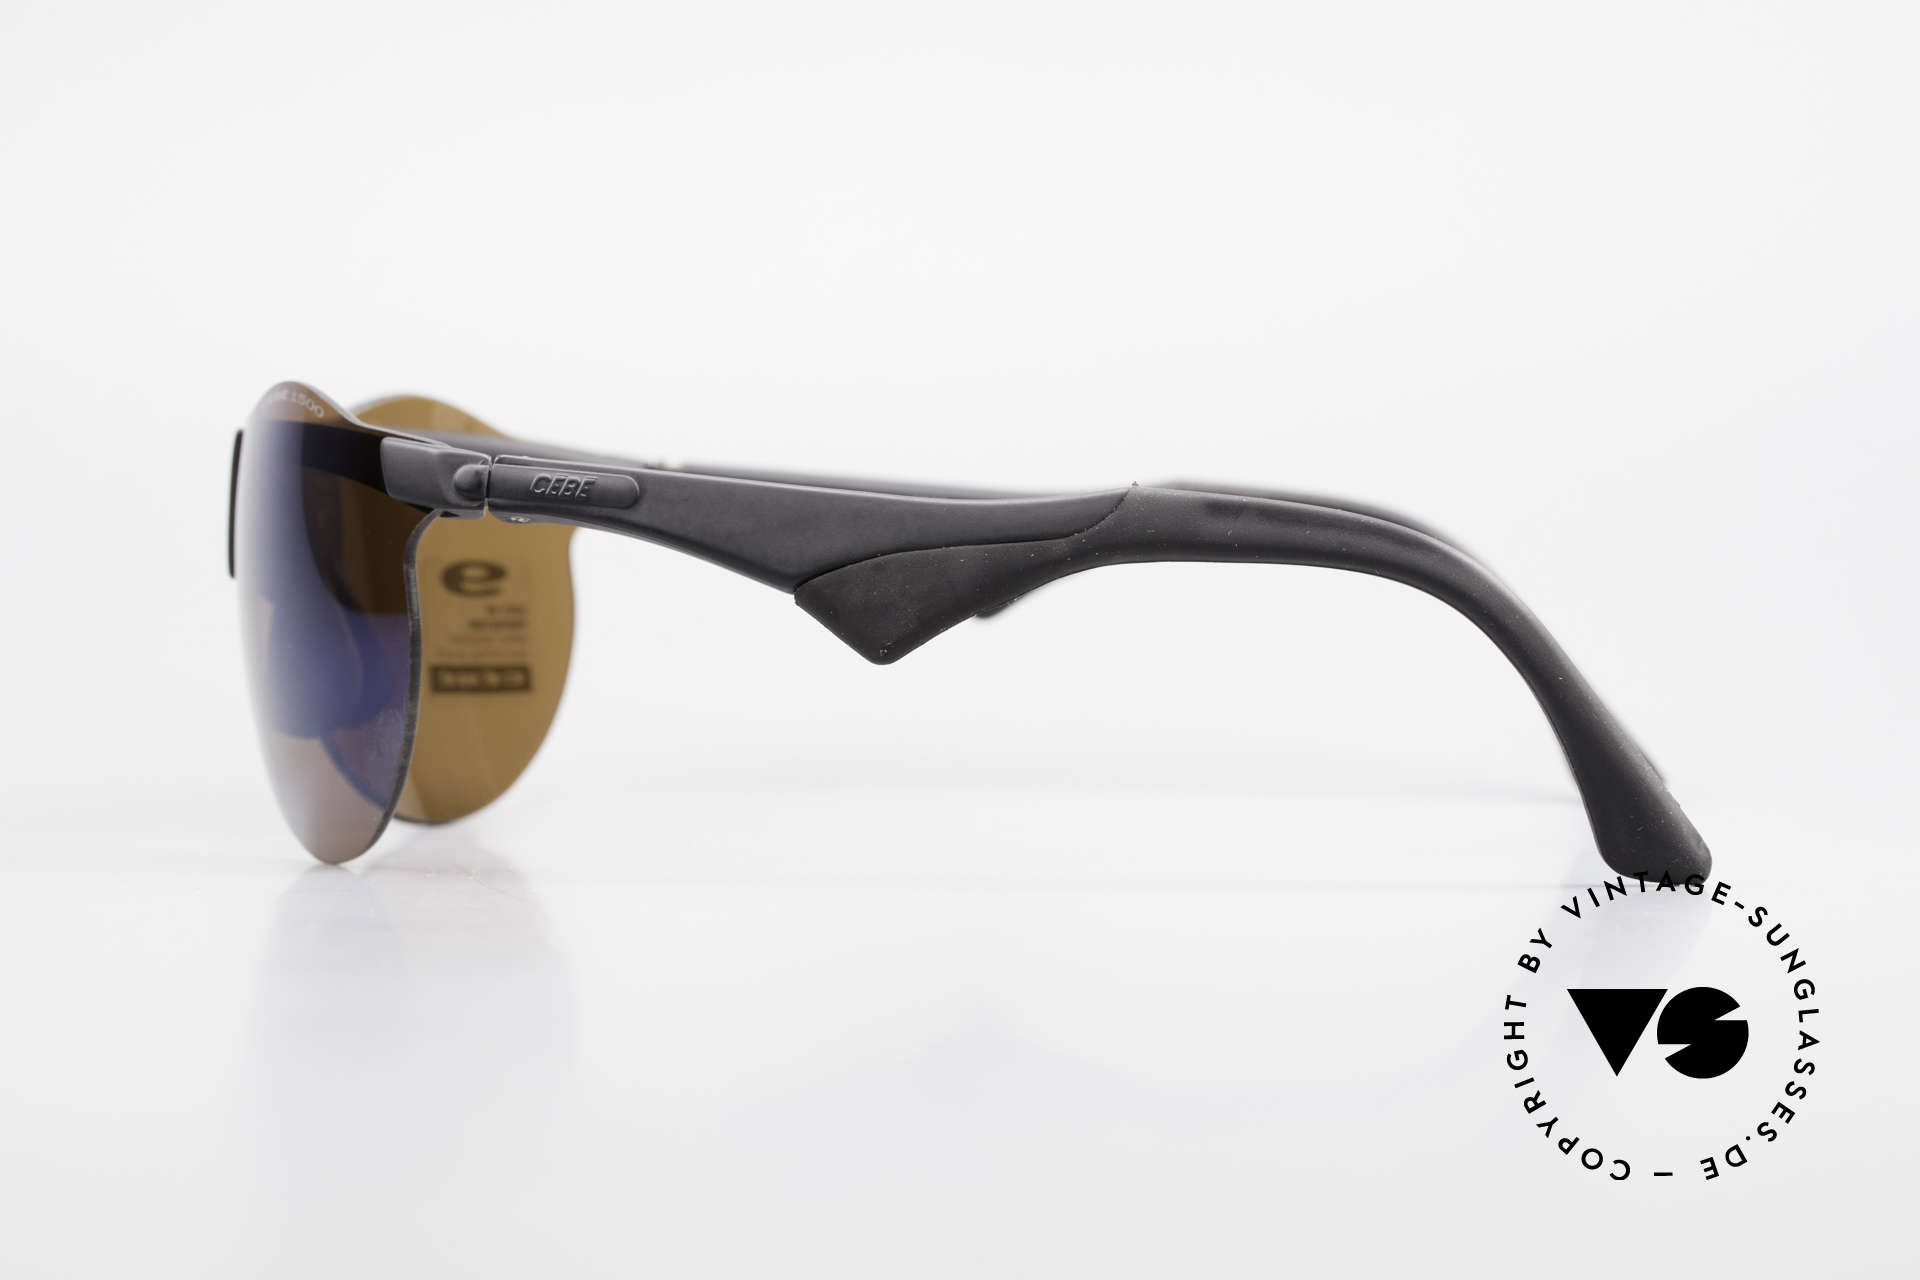 Cebe 1943 Rare Old Racing Sunglasses, with impact resistant sun lenses (high optical quality), Made for Men and Women